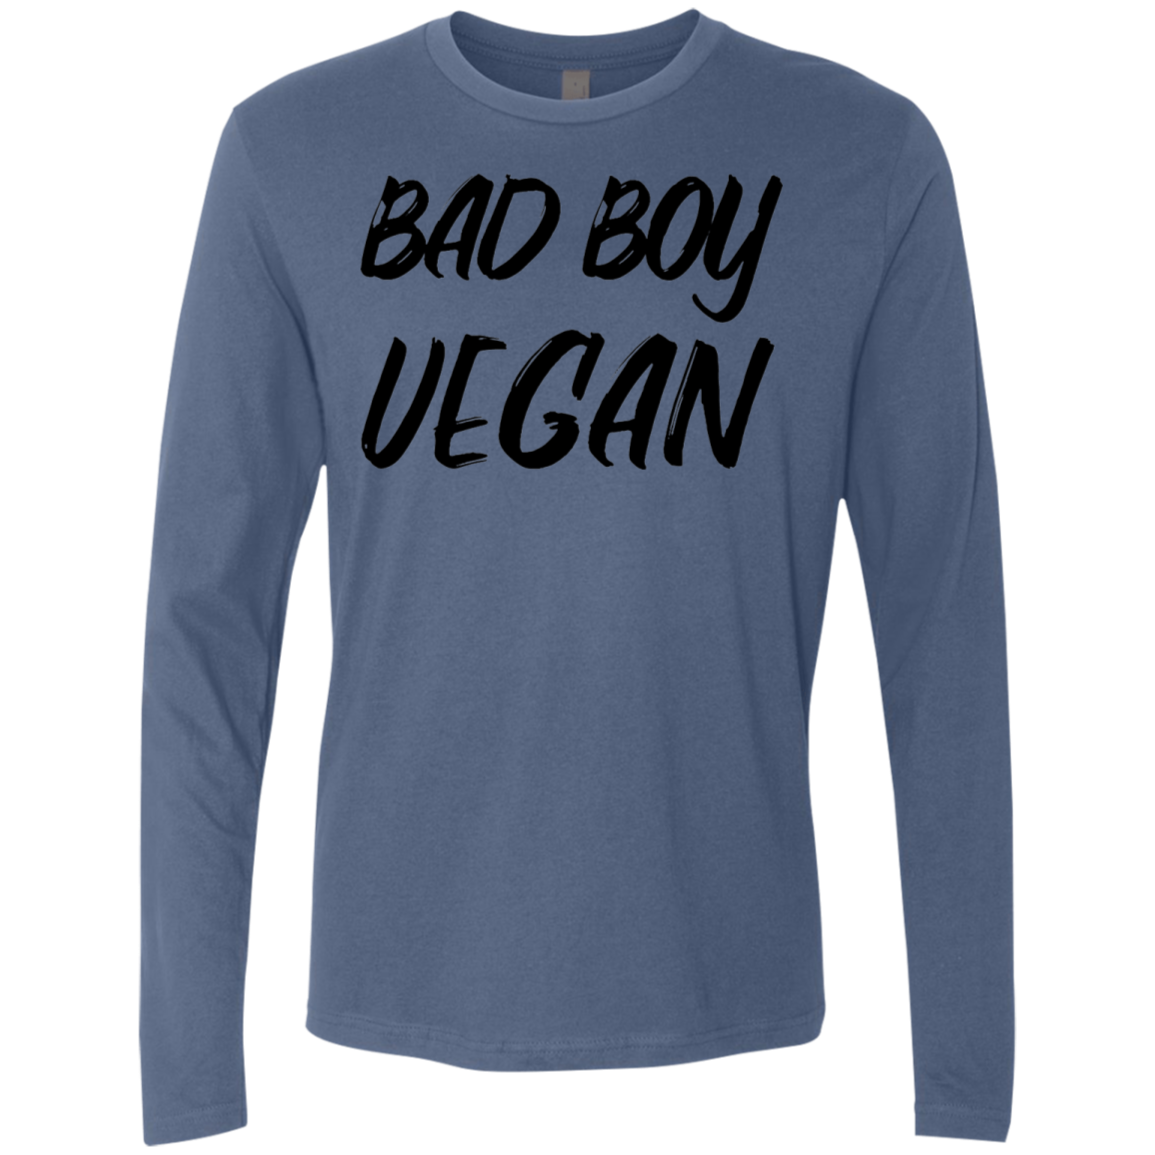 Bad Boy Vegan Men's Long Sleeve Tee - Trendy Tees